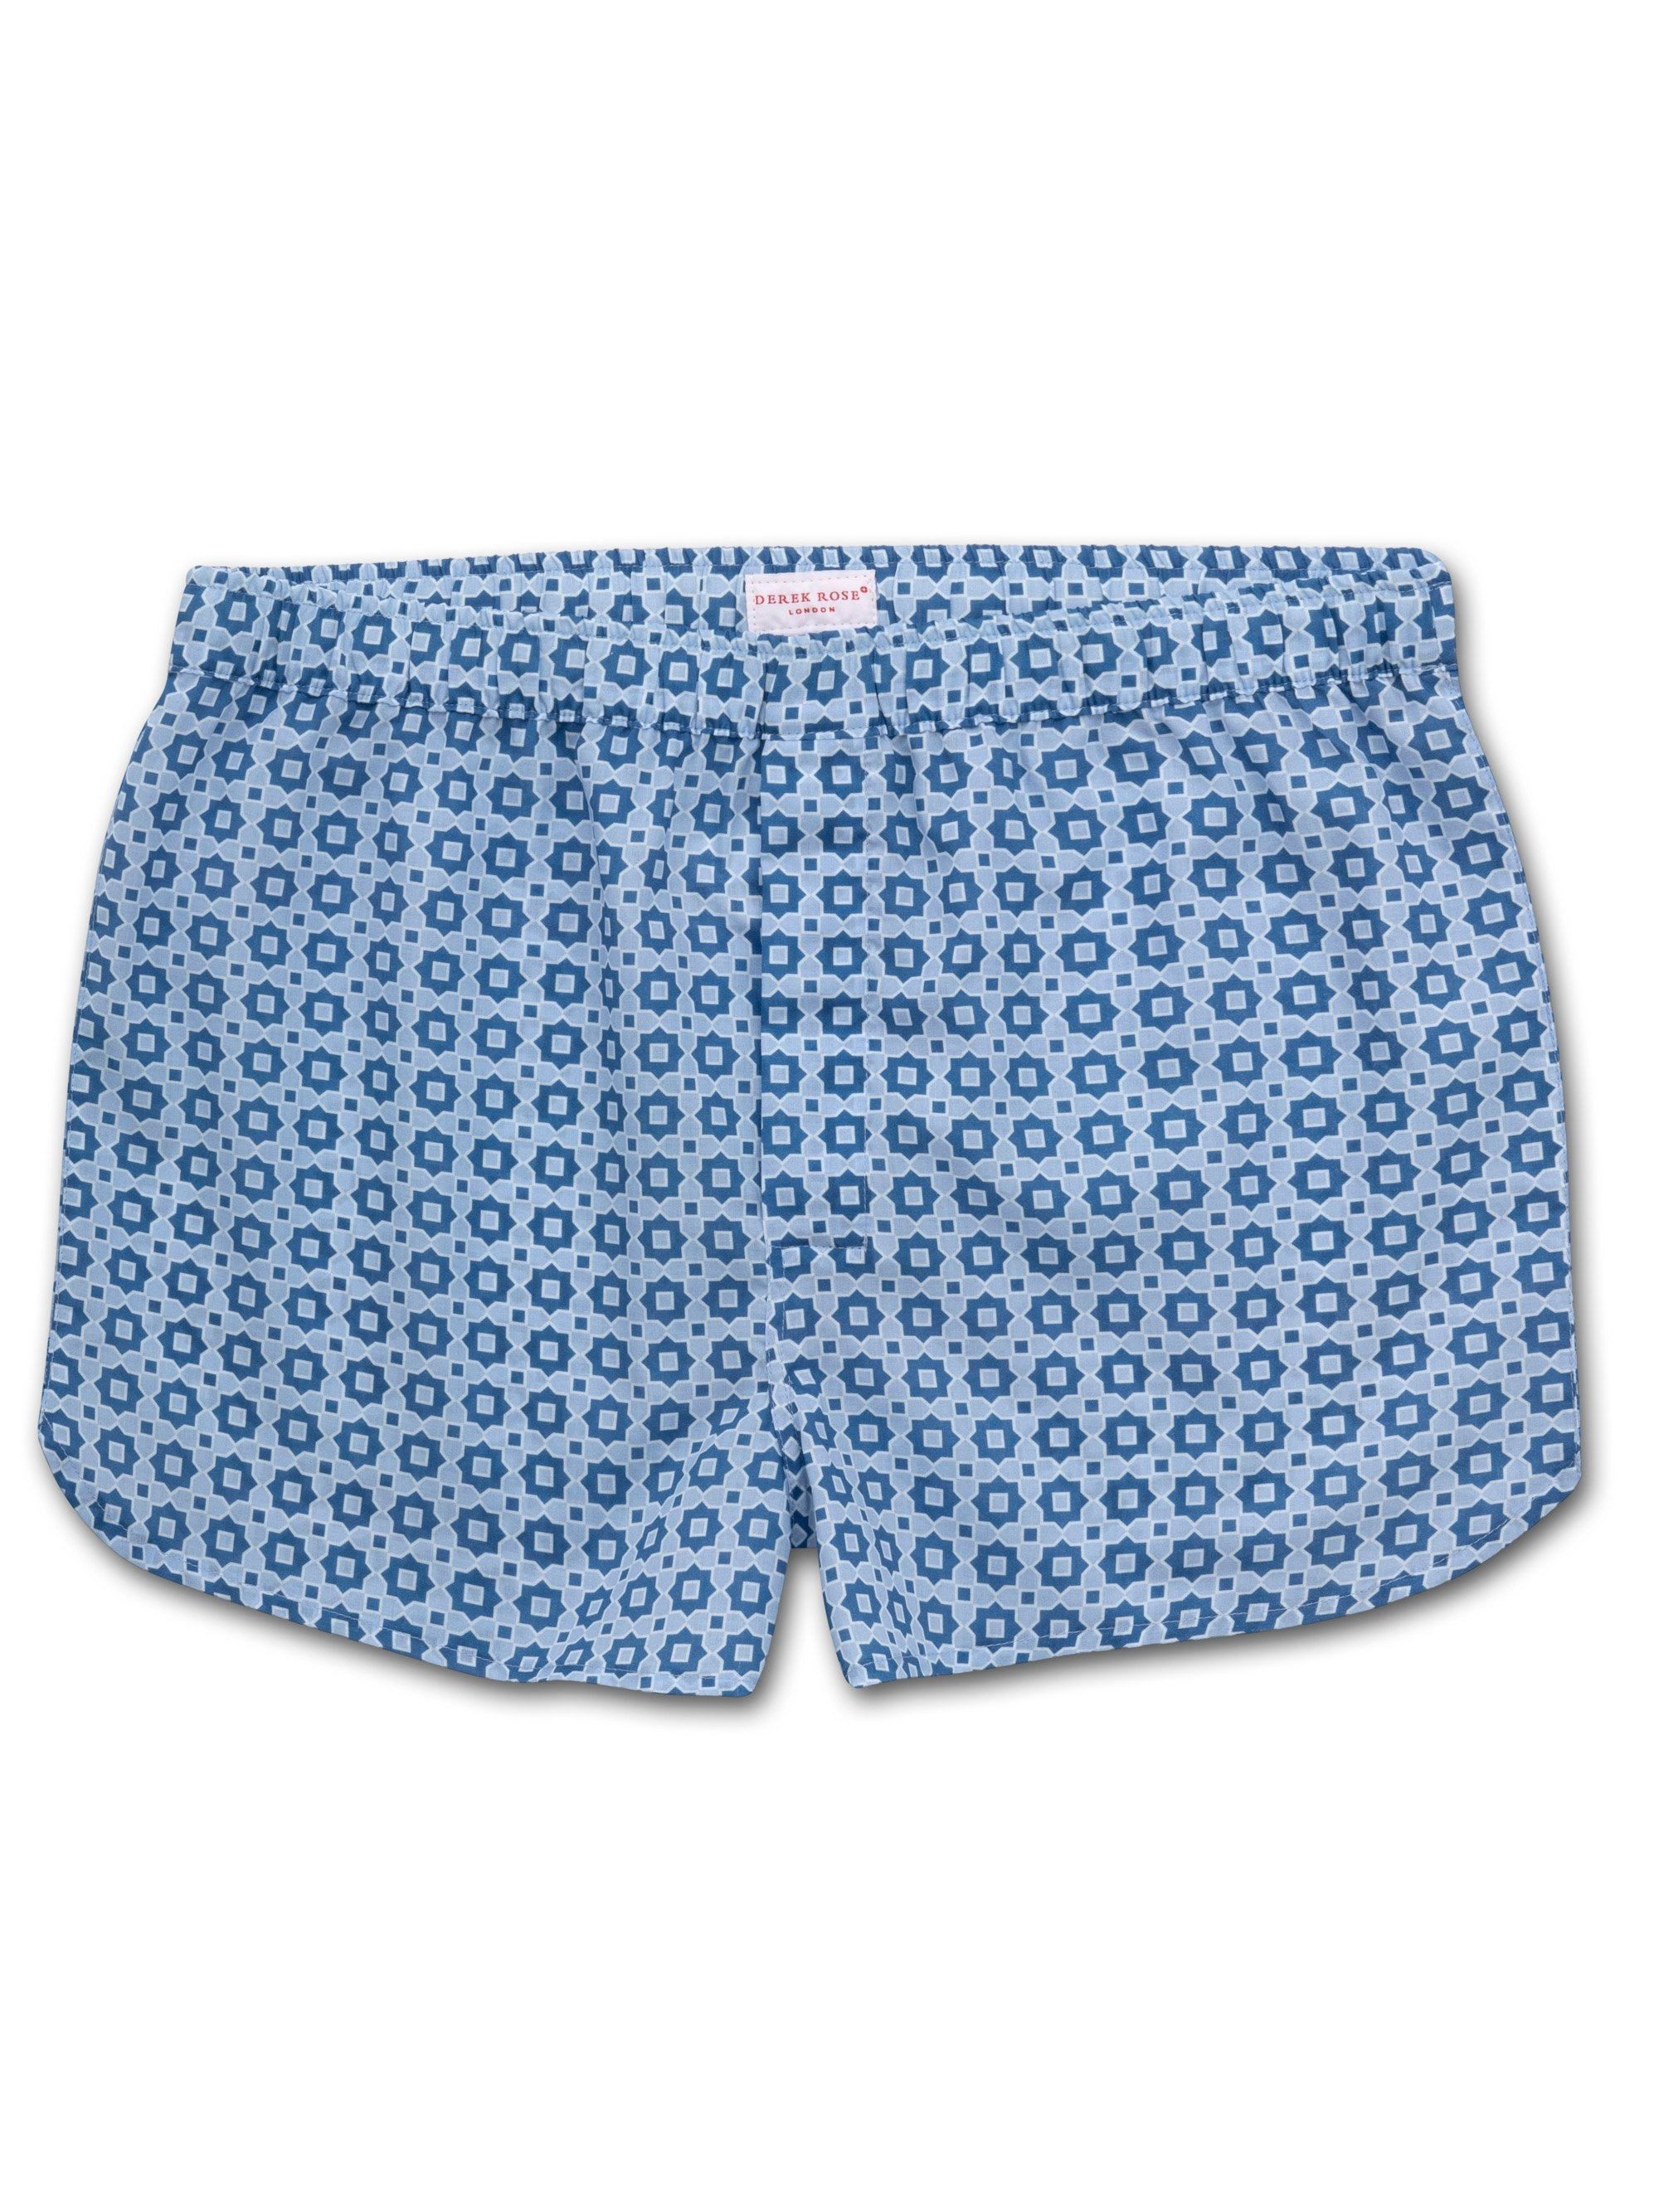 Men's Modern Fit Boxer Shorts Ledbury 34 Cotton Batiste Blue